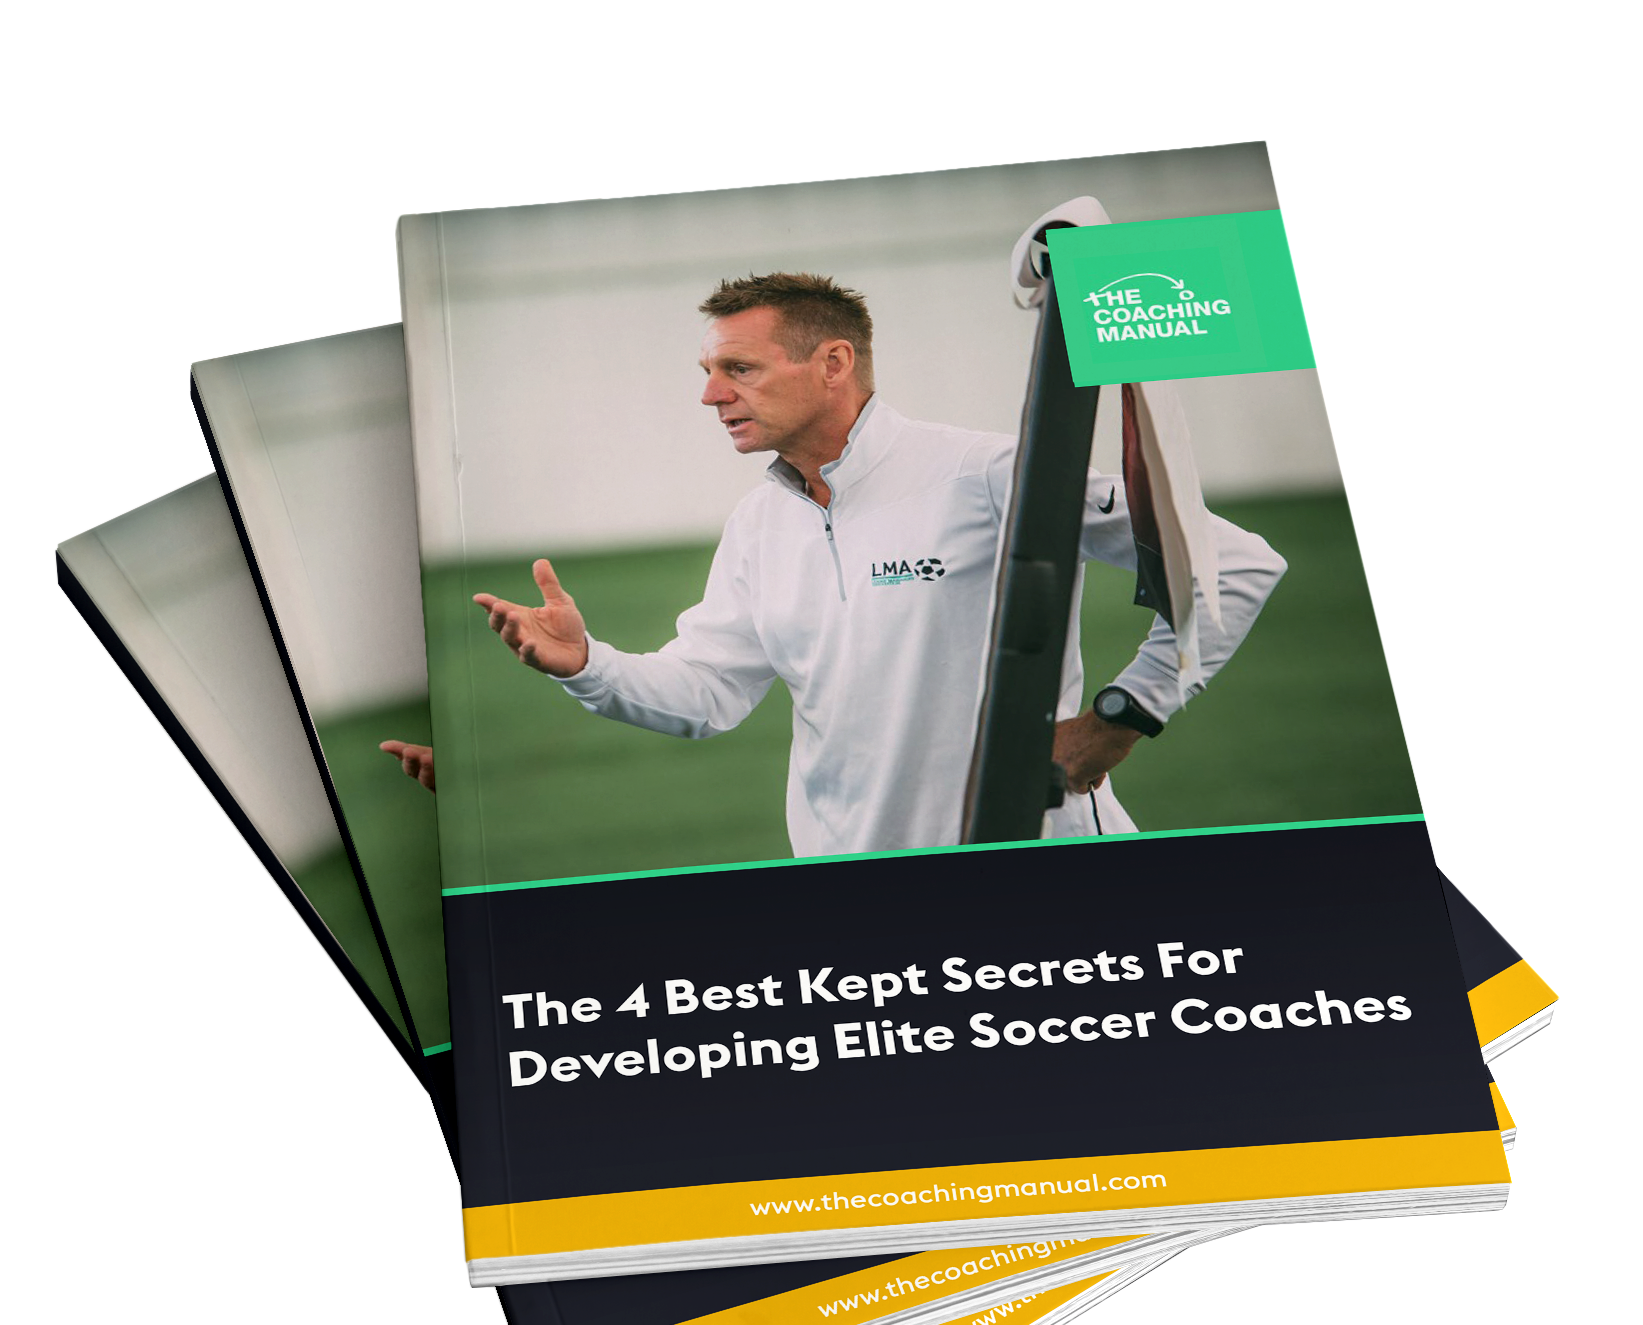 The-4-Best-Kept-Secrets-For-Developing-Elite-Soccer-Coaches-crop